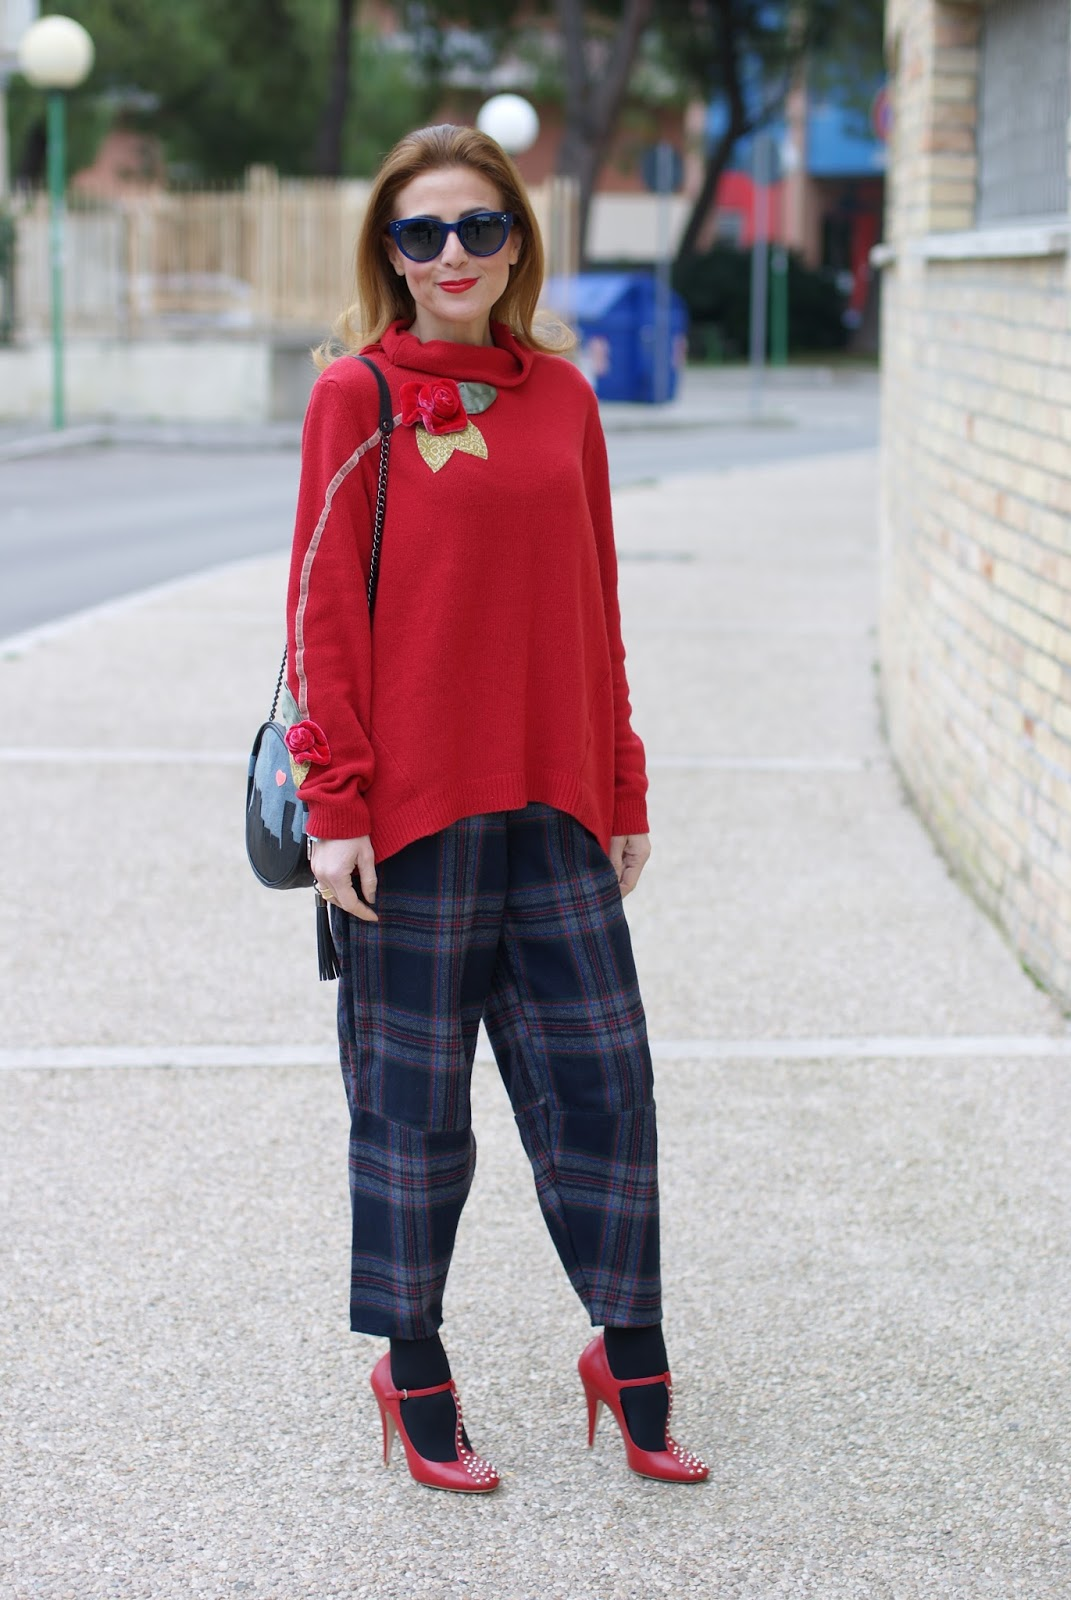 How to wear Choies Plaid pants, Rosè a Pois sweater and Miu Miu Mary Jane pumps on Fashion and Cookies fashion blog, fashion blogger style